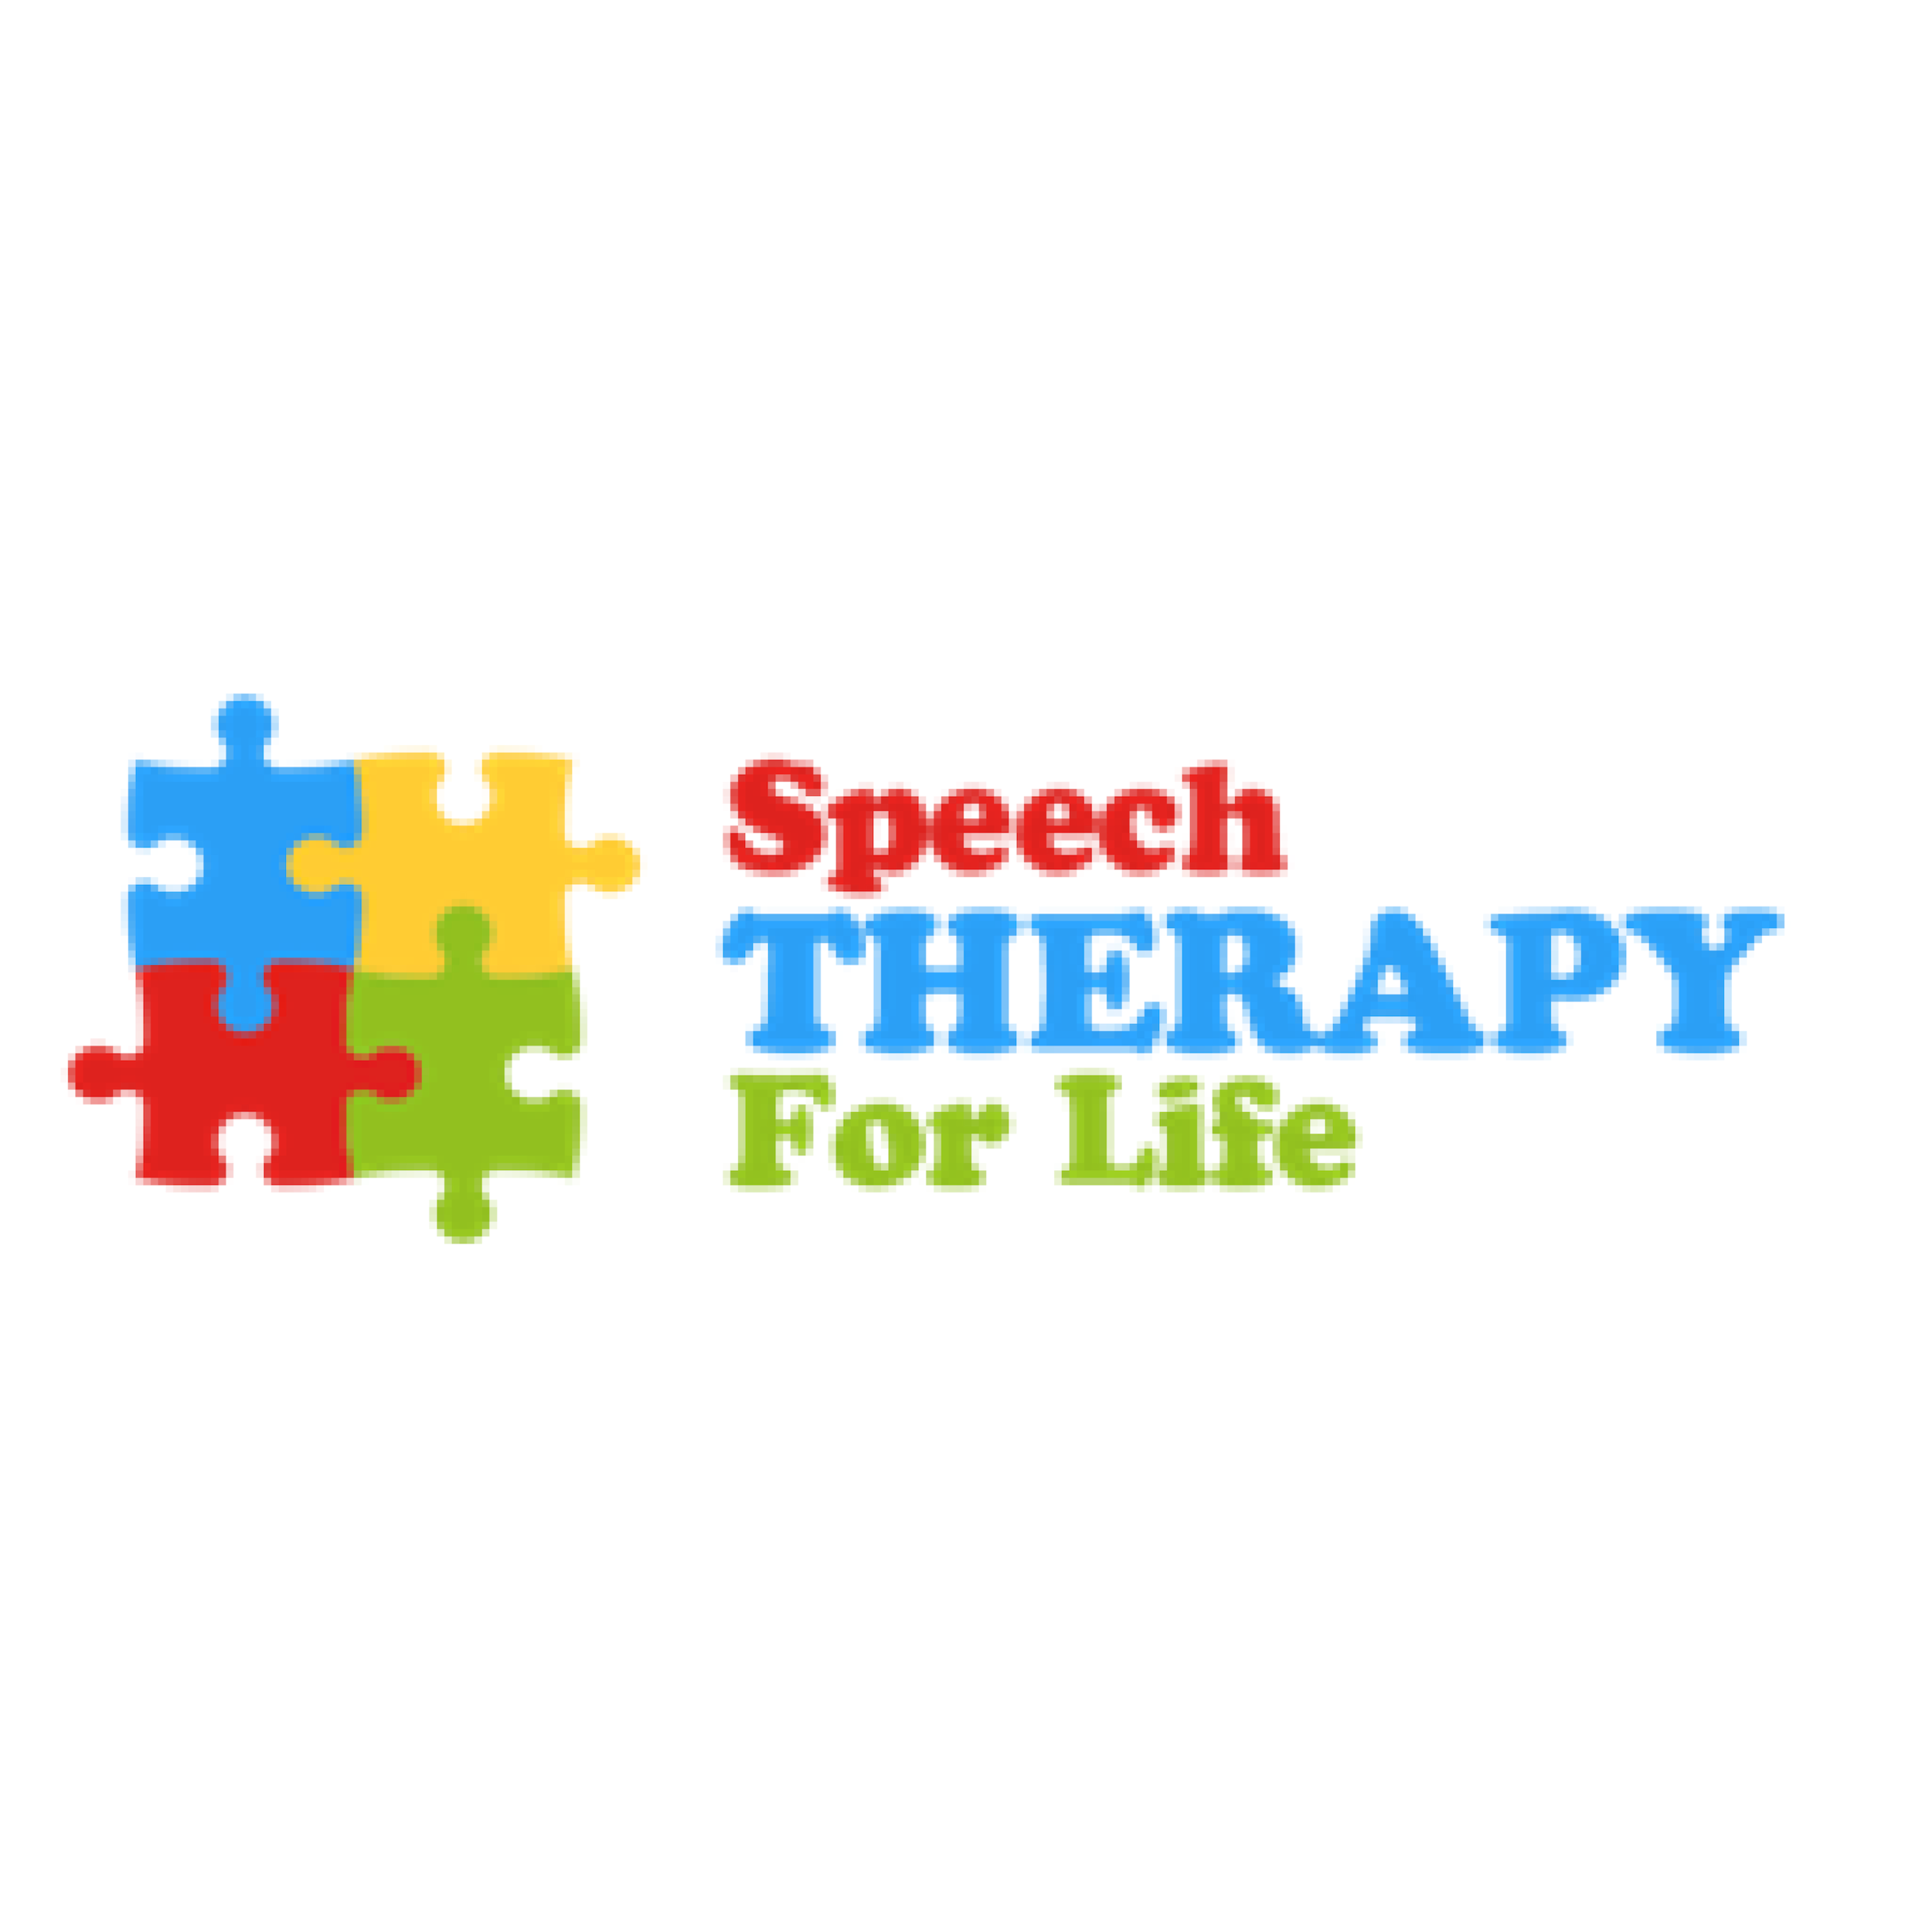 SPEECH FOR LIFE - COMPANY LOGO.png